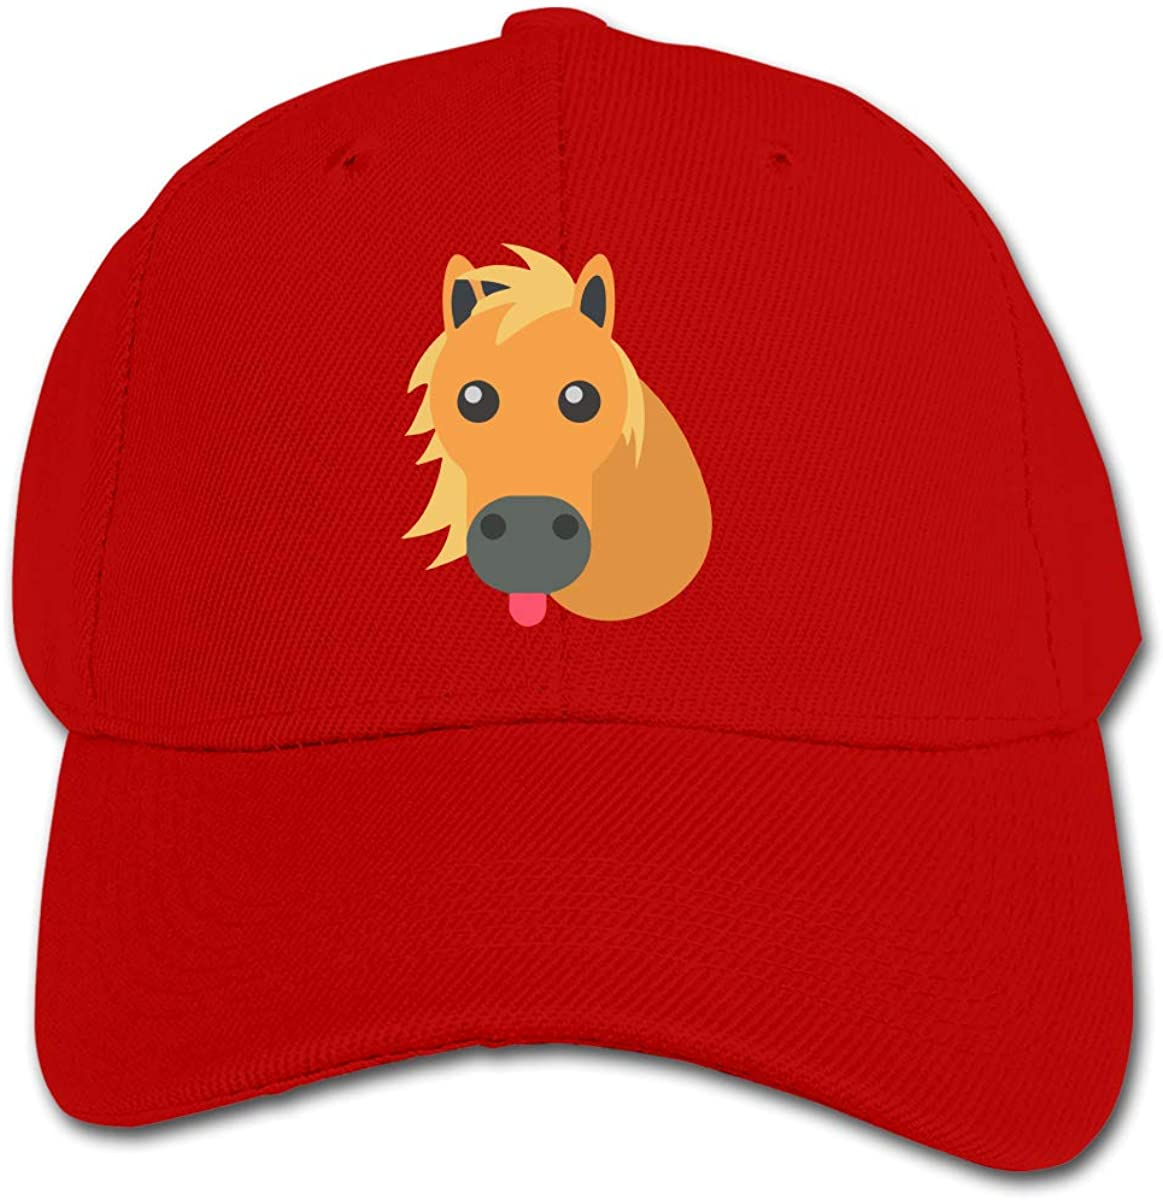 Cute Horse Kids Baseball Cap Hat Unisex Toddler Sun Hat Adsjutable Trucker Hat